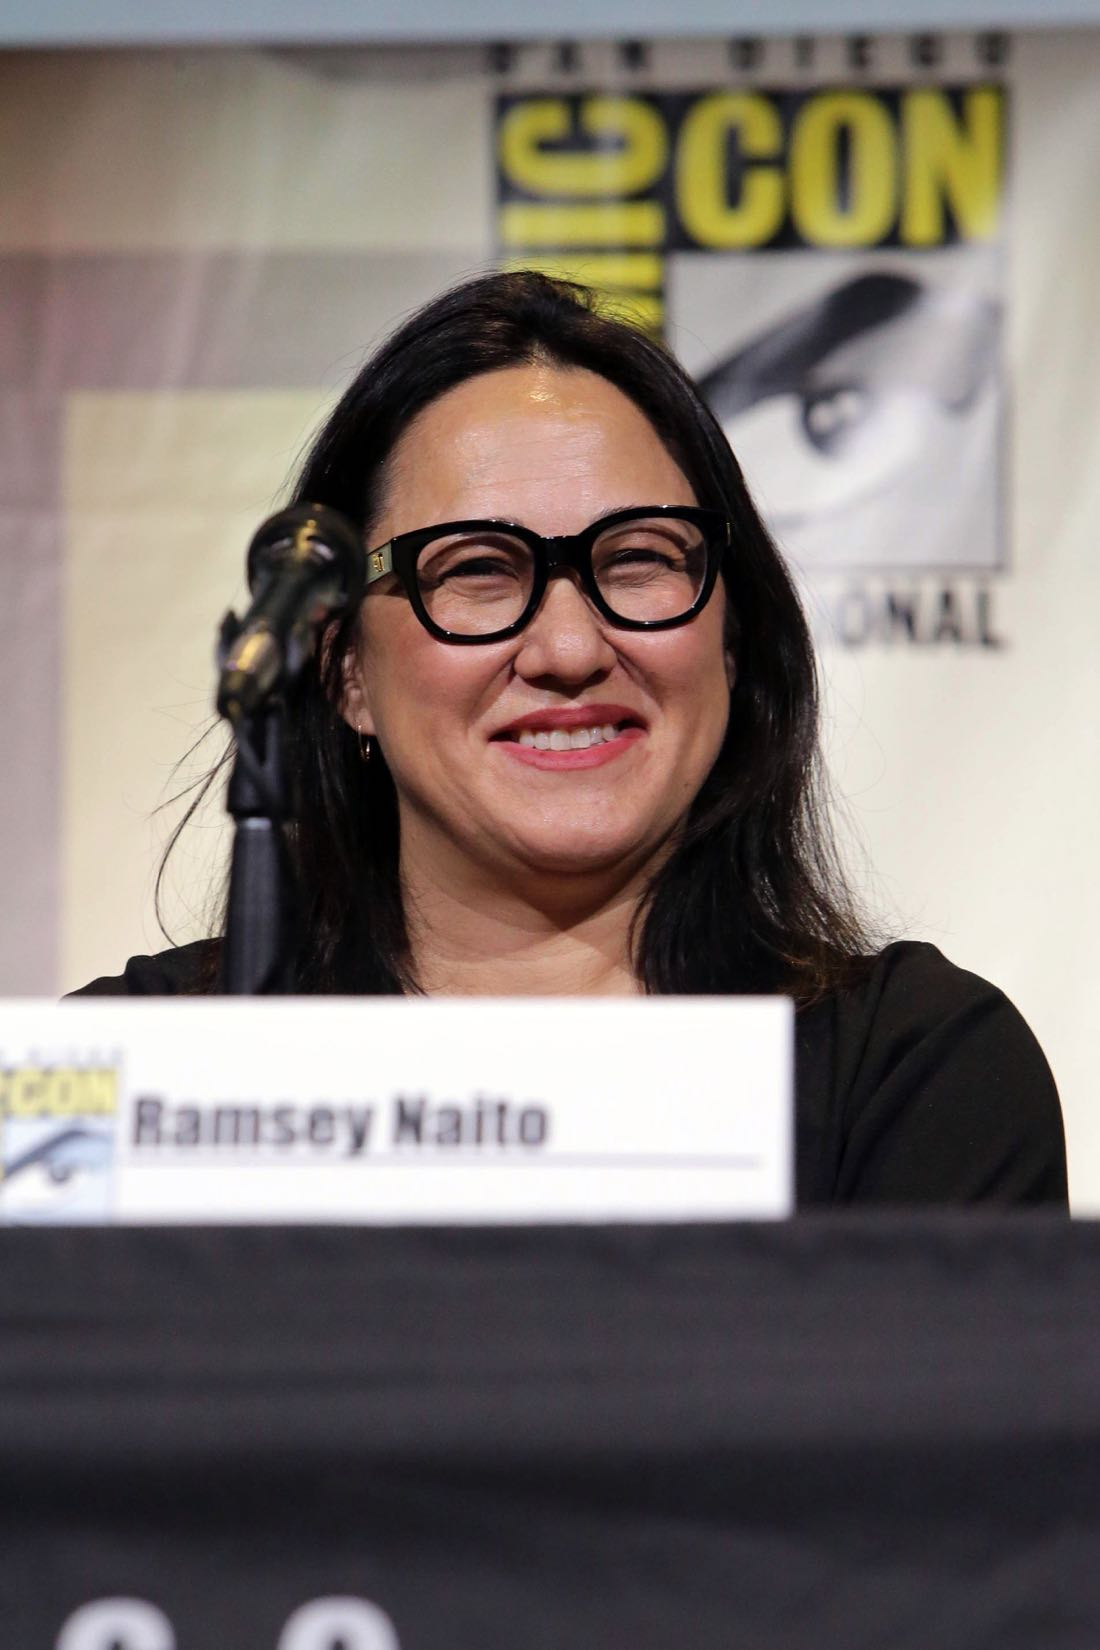 THE BOSS BABY Producer Ramsey Naito at DreamWorks Animation's Comic Con Hall H Panel.